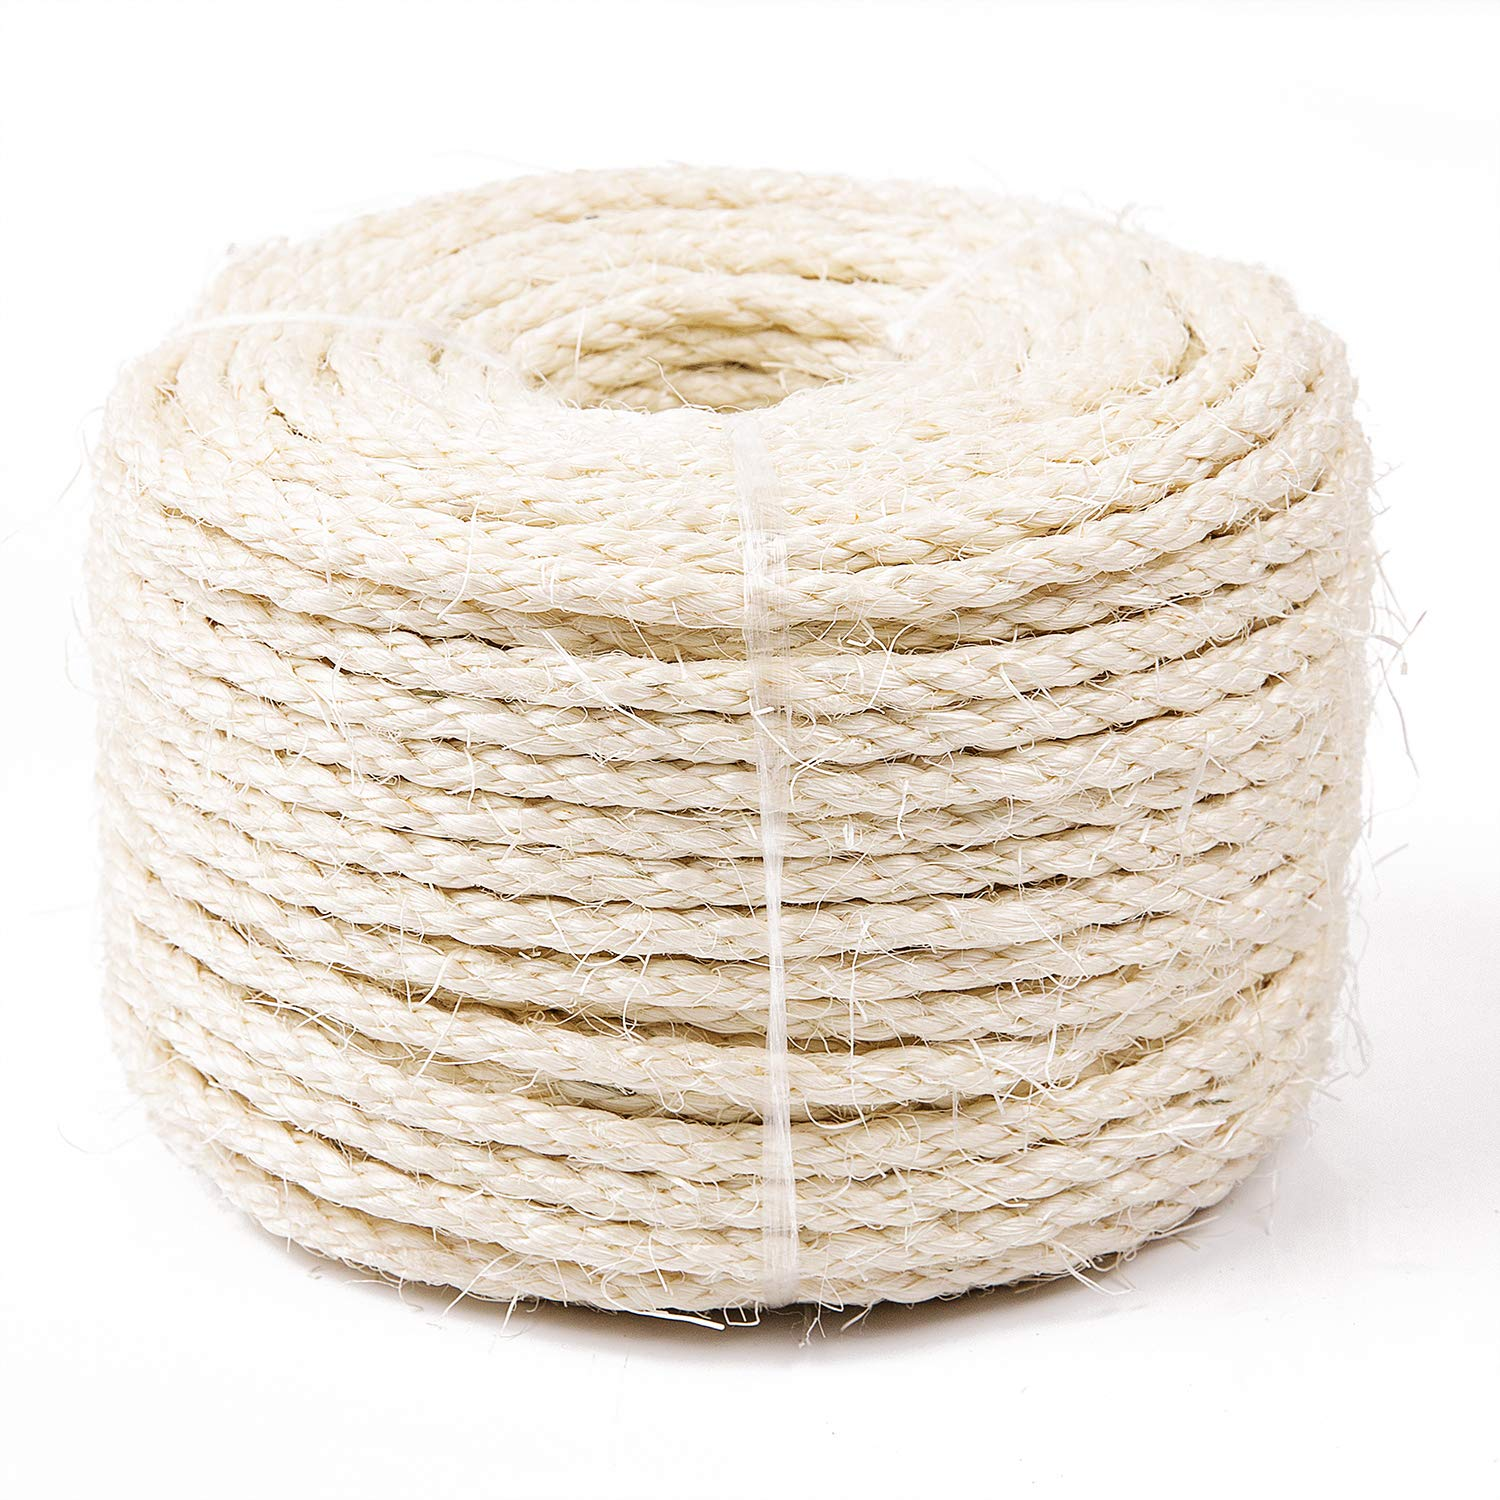 Hemp Rope for Repairing Recovering or DIY Scratcher 6mm Diameter Yangbaga Cat Natural Sisal Rope for Scratching Post Tree Replacement Come with a Sisal Ball